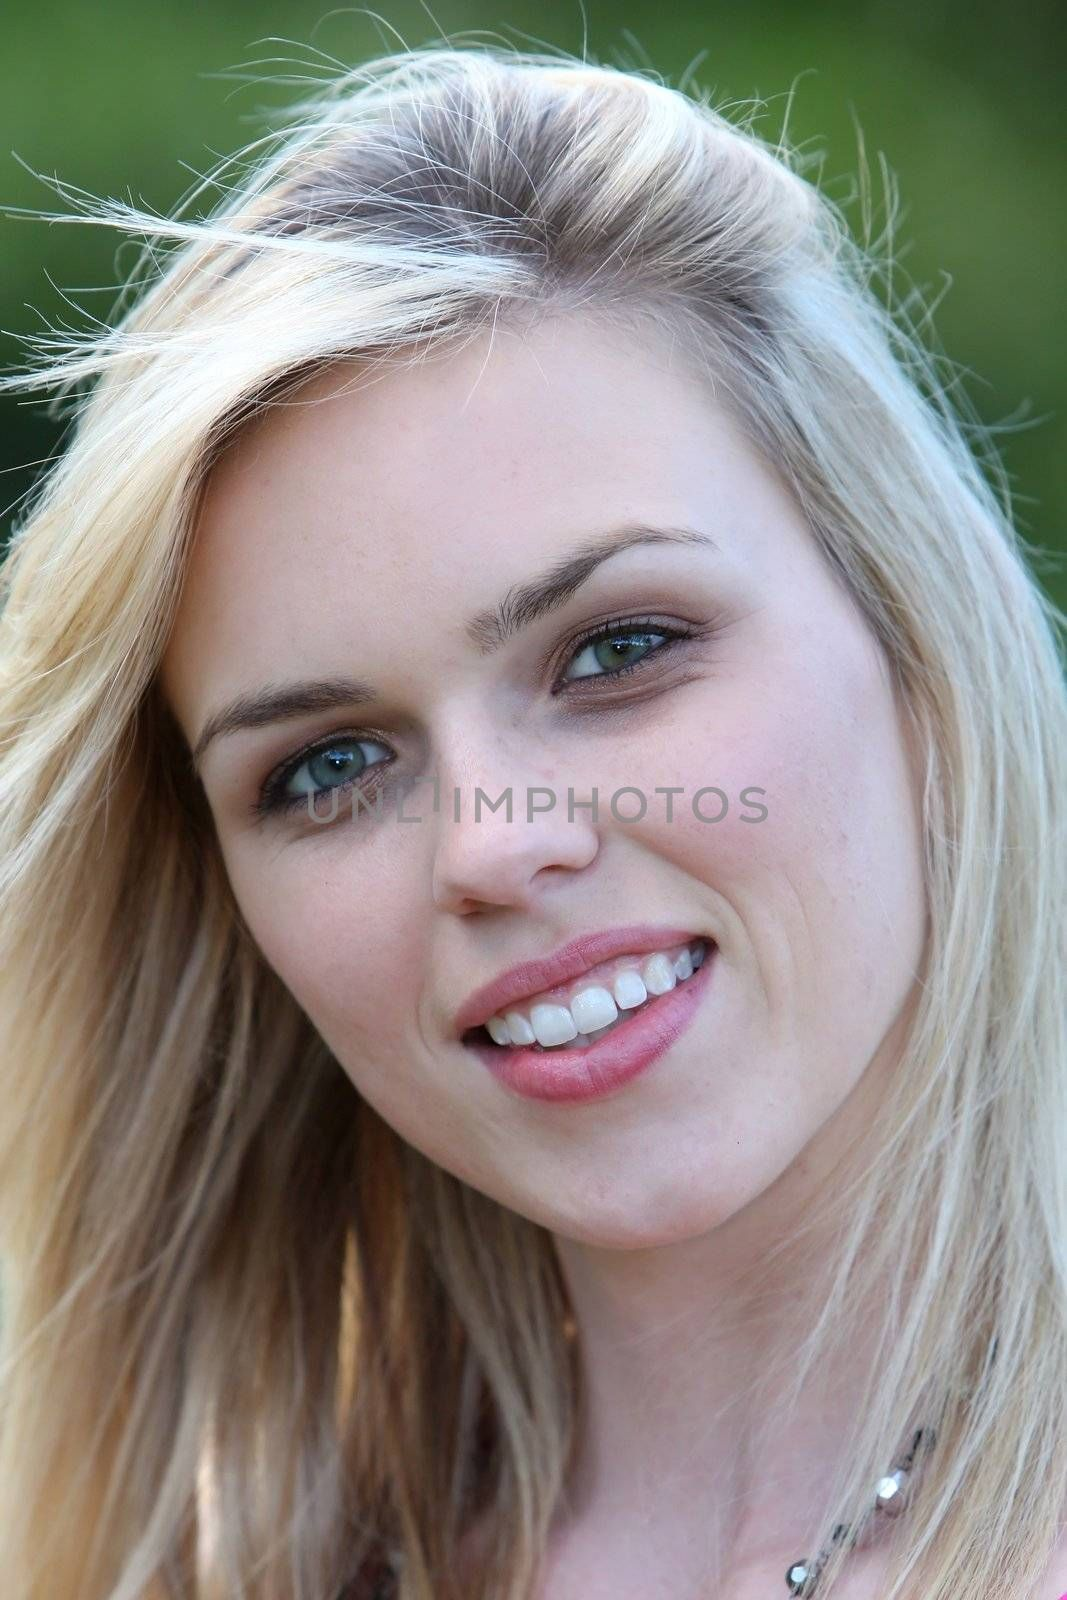 Gorgeous blond smiling woman with beautiful eyes